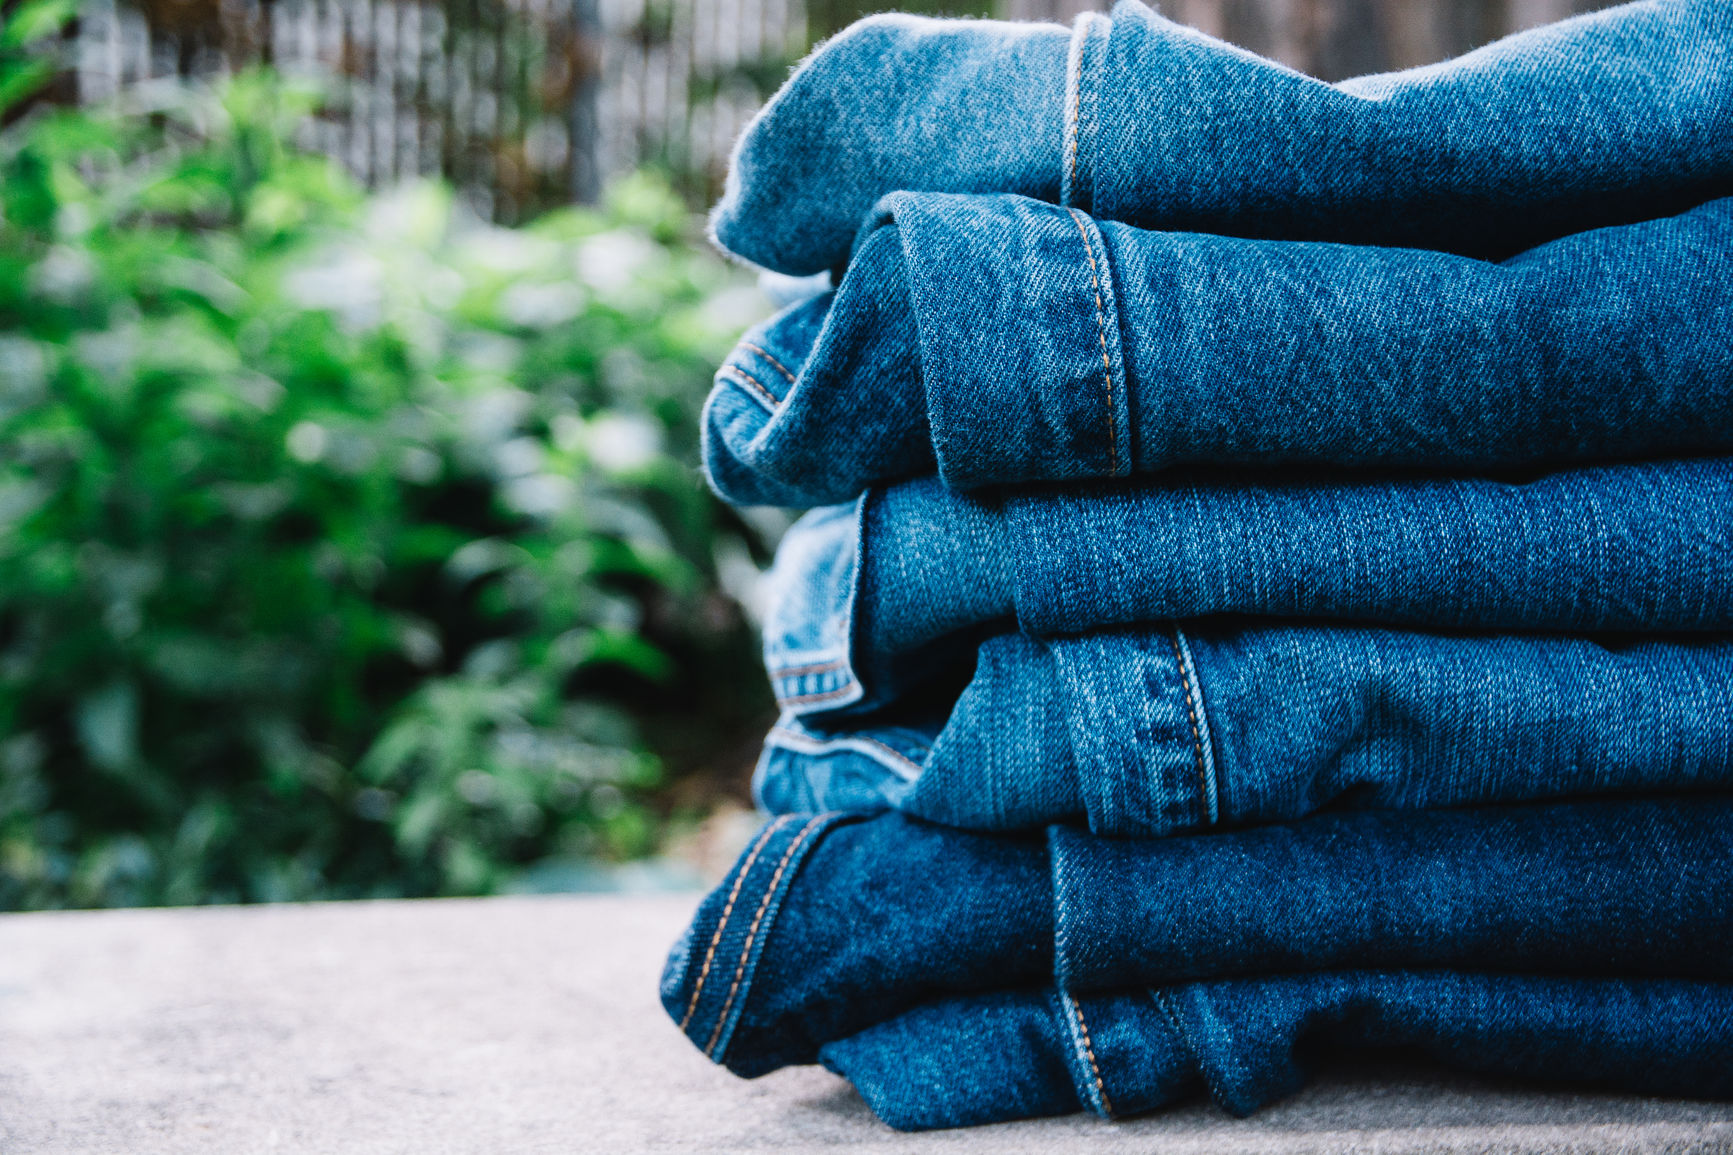 Denim jeans stacked